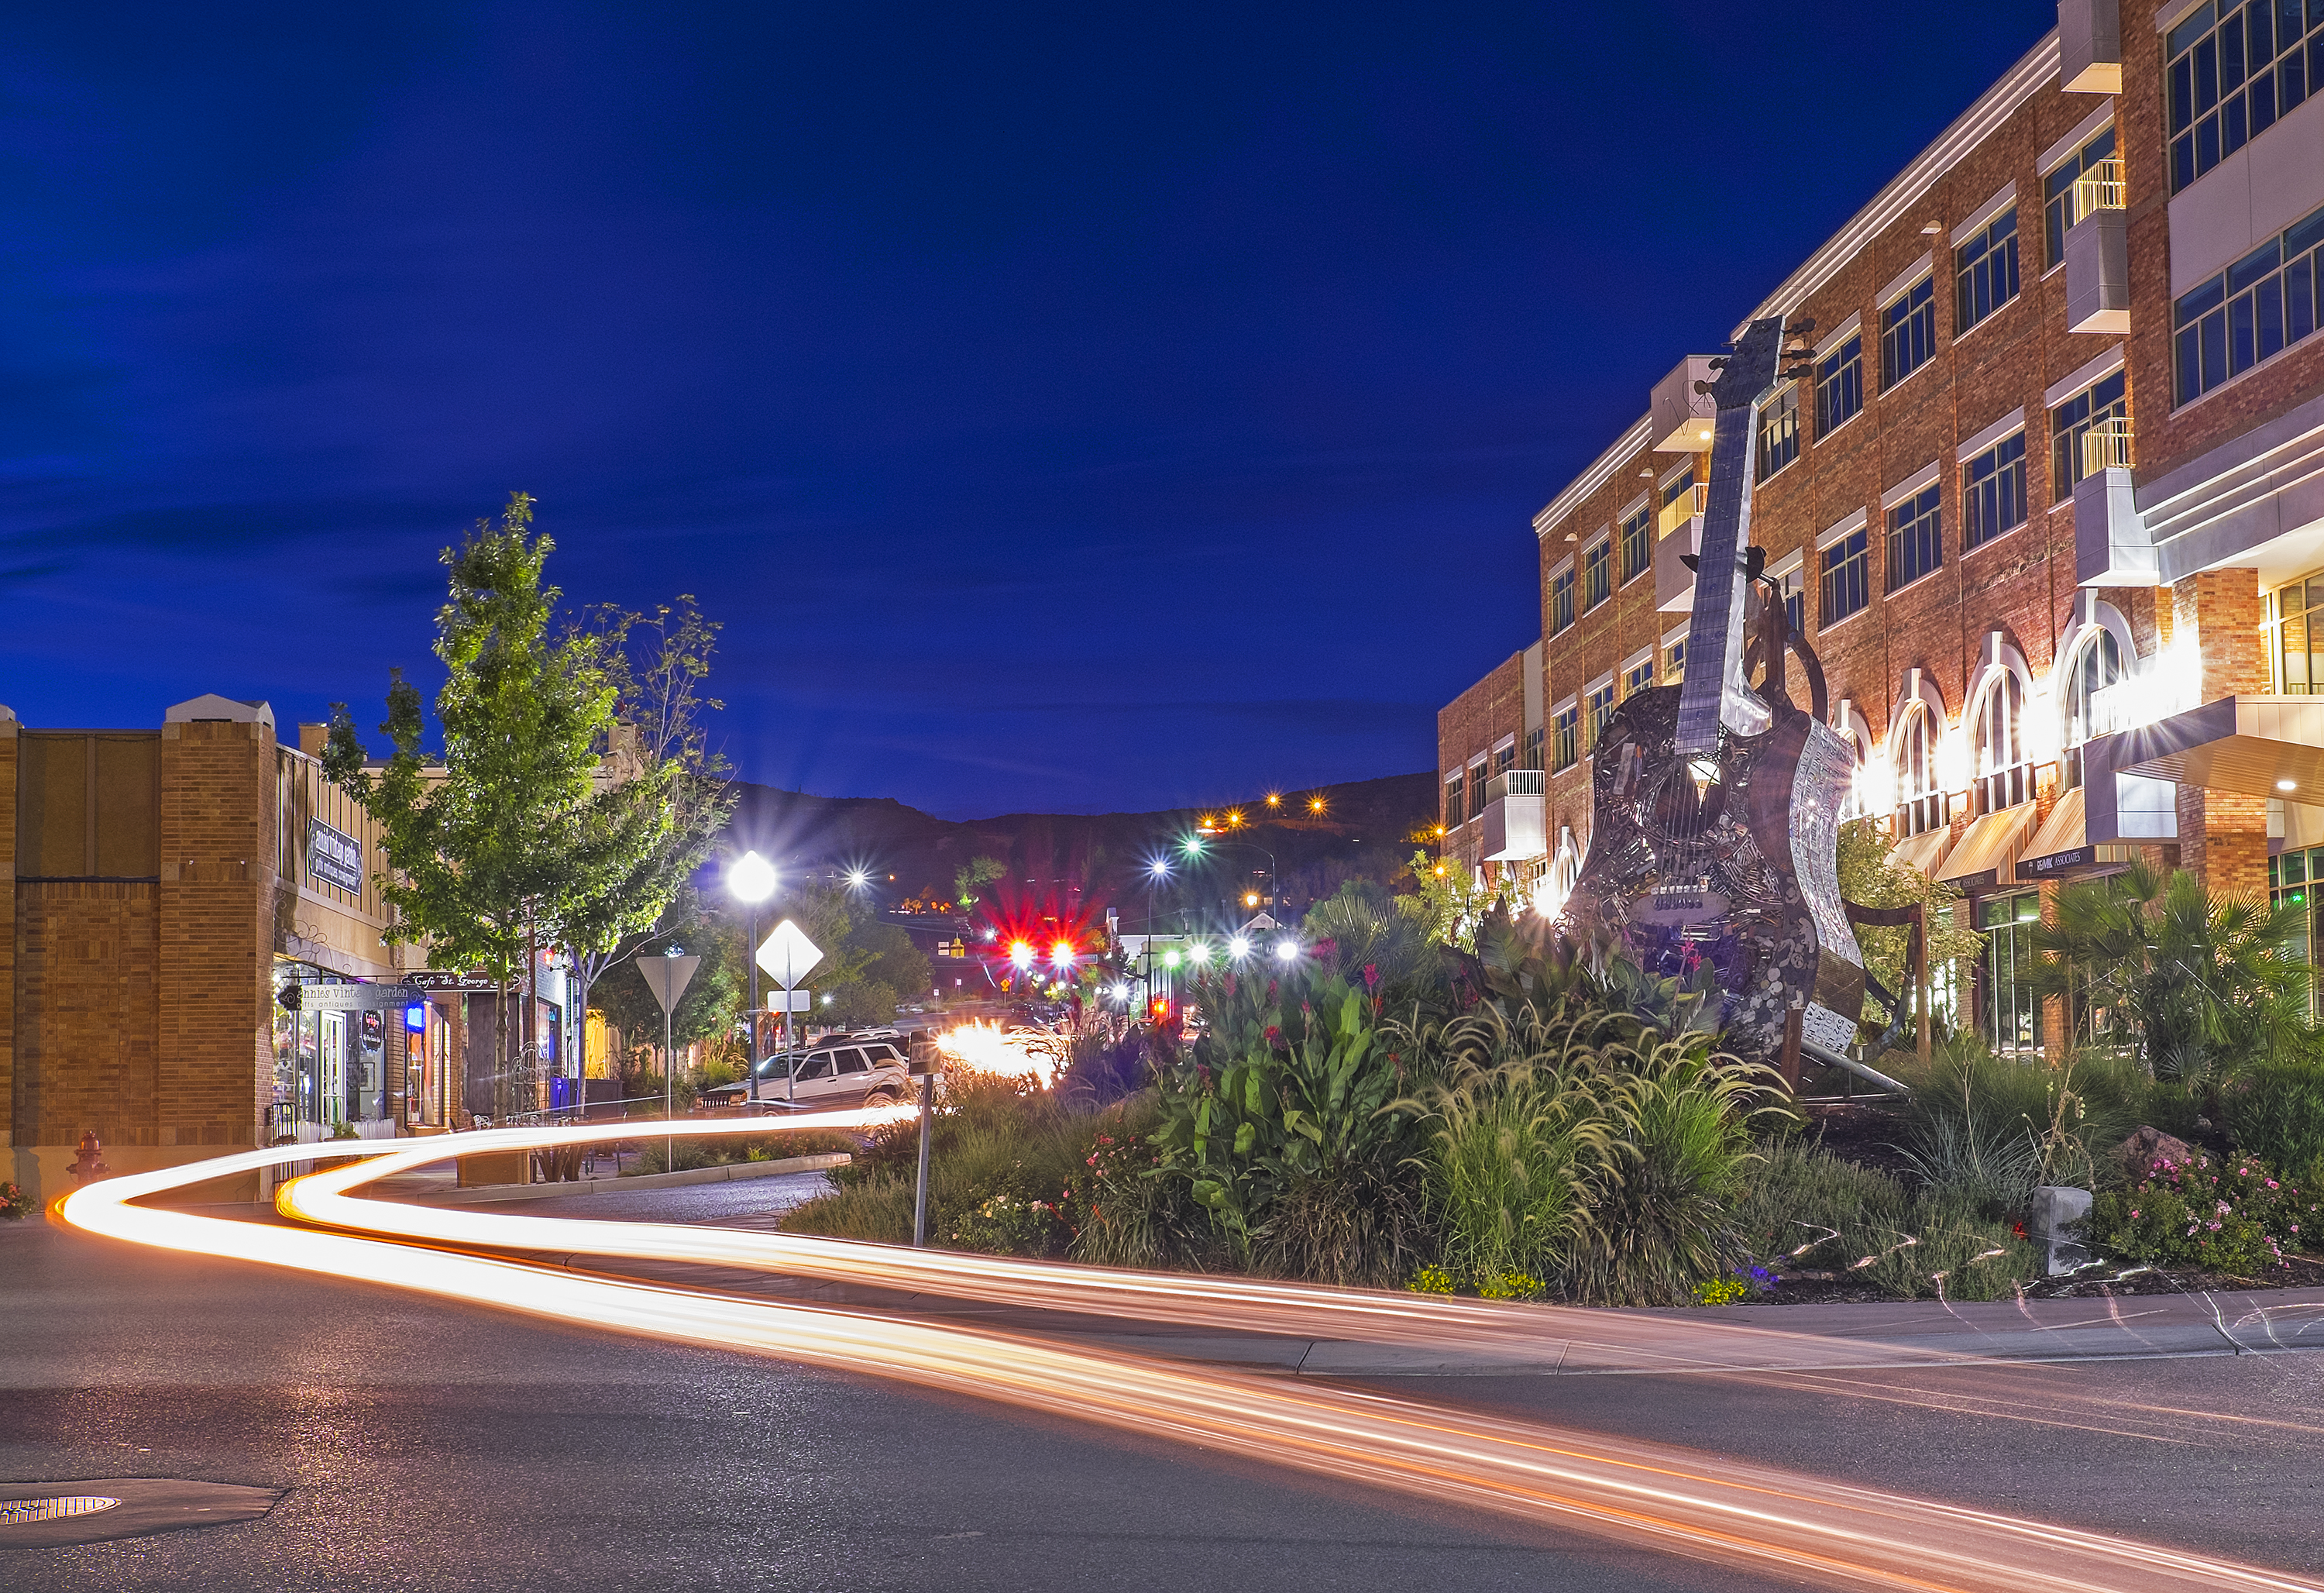 """Photograph of Main Street in St. George by photographer Nathan Wotkyns, owner of Wide Angle Photography. St. George, Utah, June 2015 